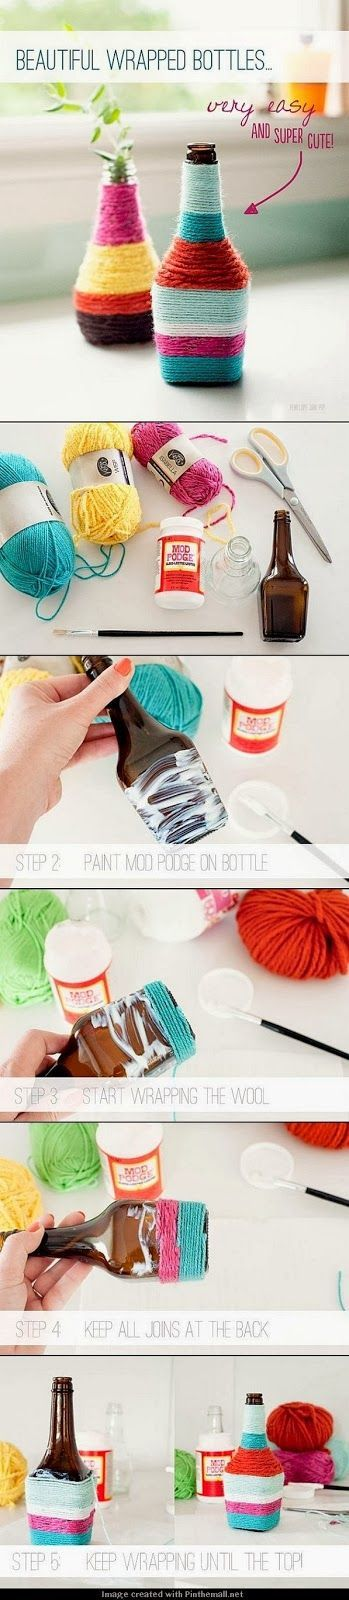 Popular DIY Ideas: Beautiful Wrapped Bottles DIY